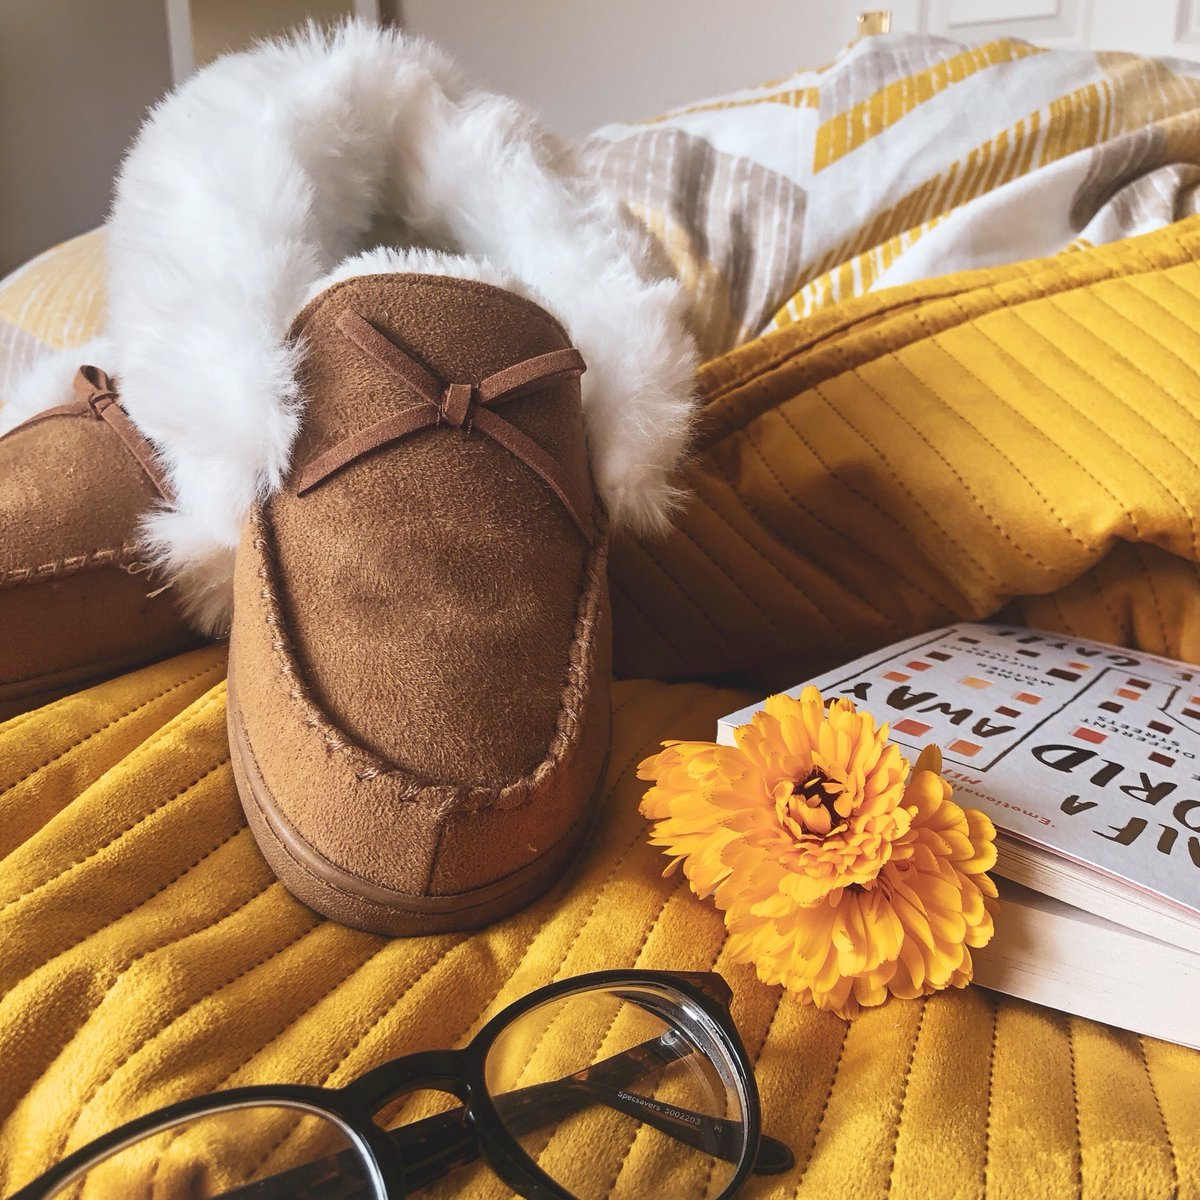 The special Moccasin design together with classic http://bow.Do you like them? https://bit.ly/3cs7vJn :@abbeylouisarose  #veracosy #veracosyhome #slippers #memoryfoamslippers #ukslippers #cozy #cozyhome #staycozy #cozystyle #fashion #happy #relaxpic.twitter.com/xb96UAUwc7